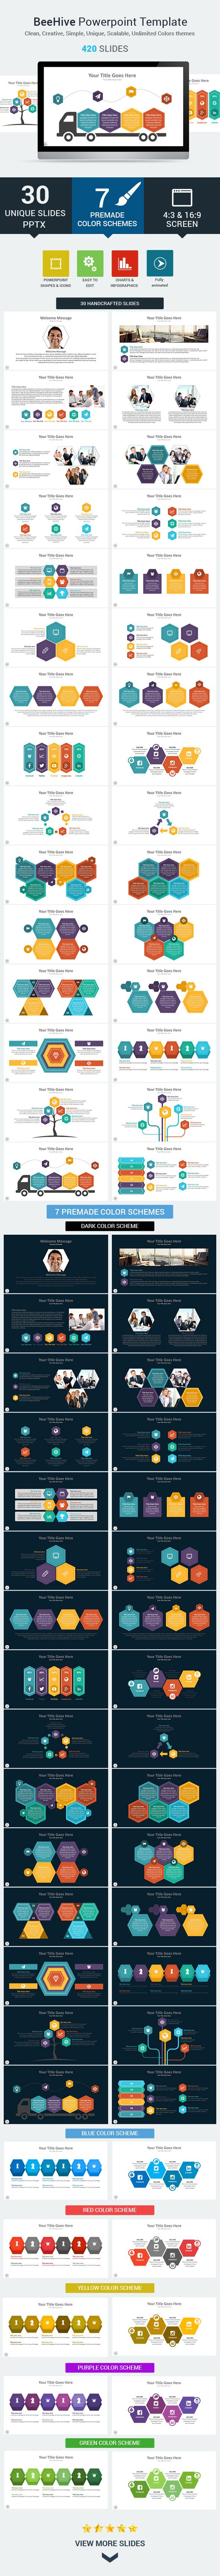 Beehive PowerPoint Presentation Template (PowerPoint Templates)